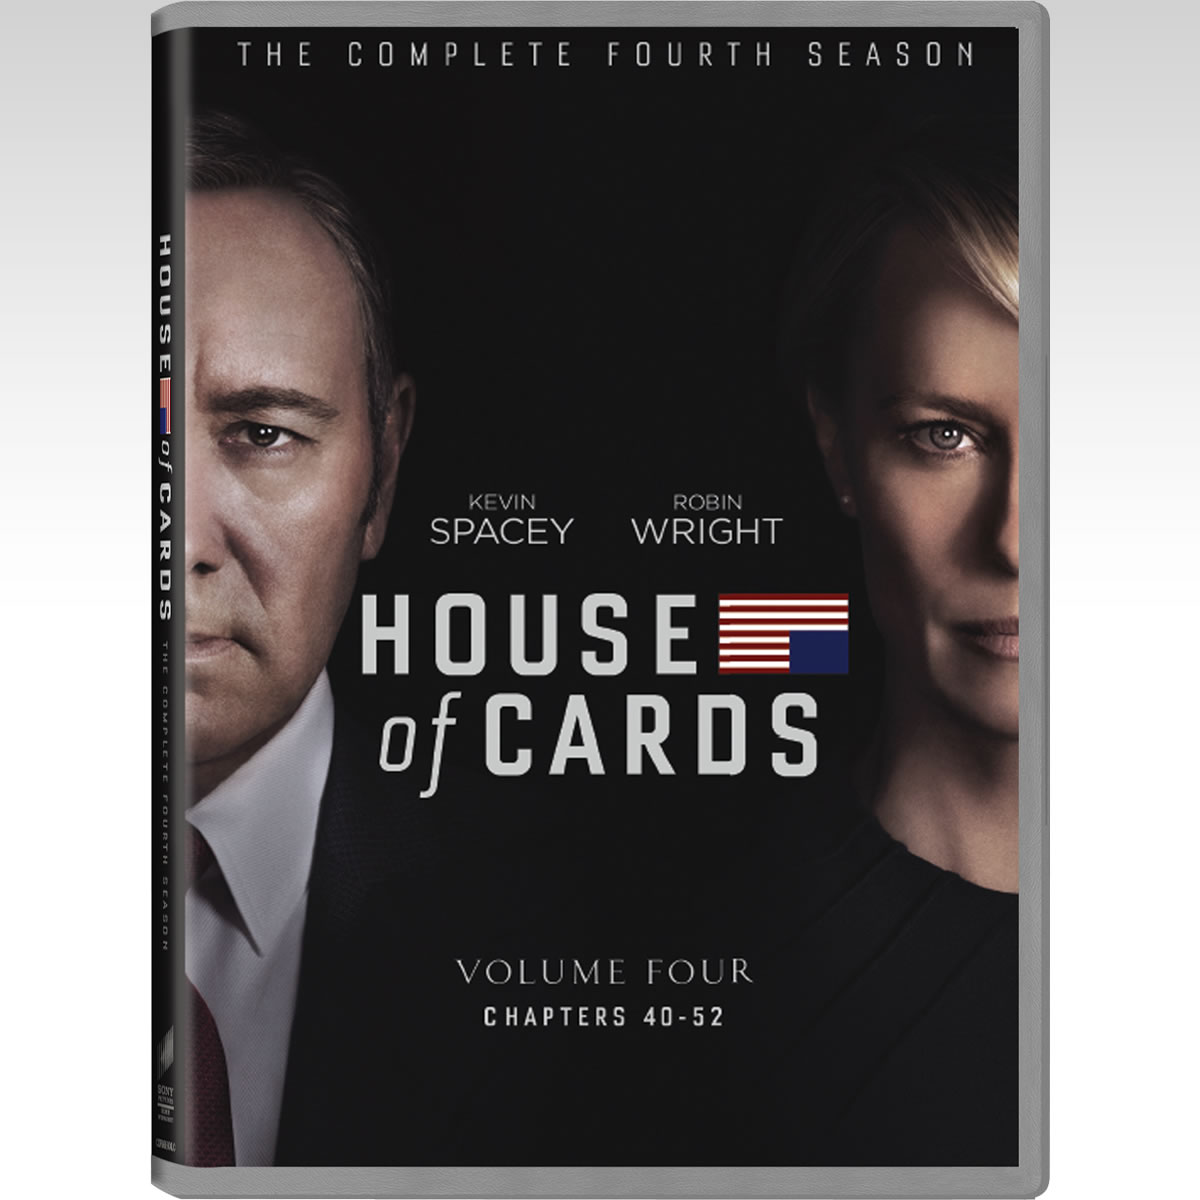 HOUSE OF CARDS Season 4 - HOUSE OF CARDS 4ος ΚΥΚΛΟΣ (4 DVDs)